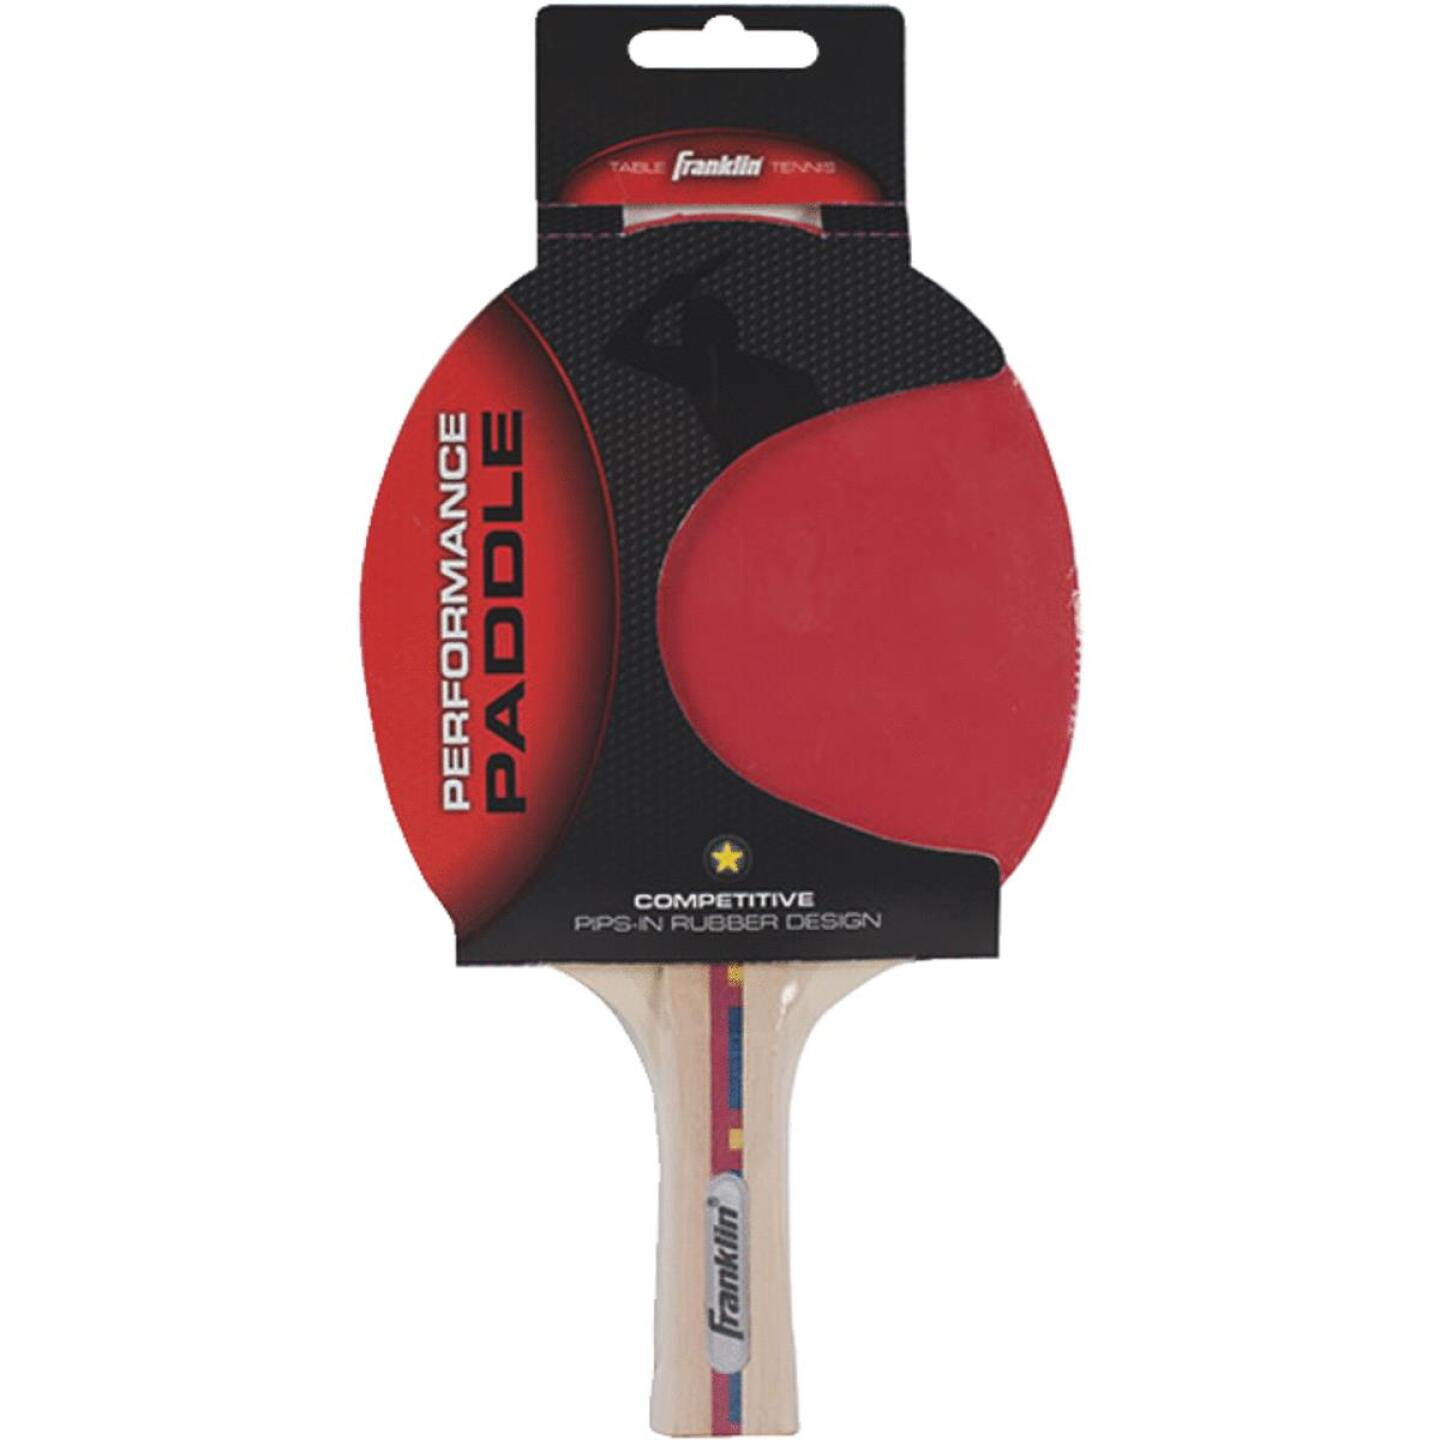 Franklin Flared Handle Rubber Face Table Tennis Paddle Image 1